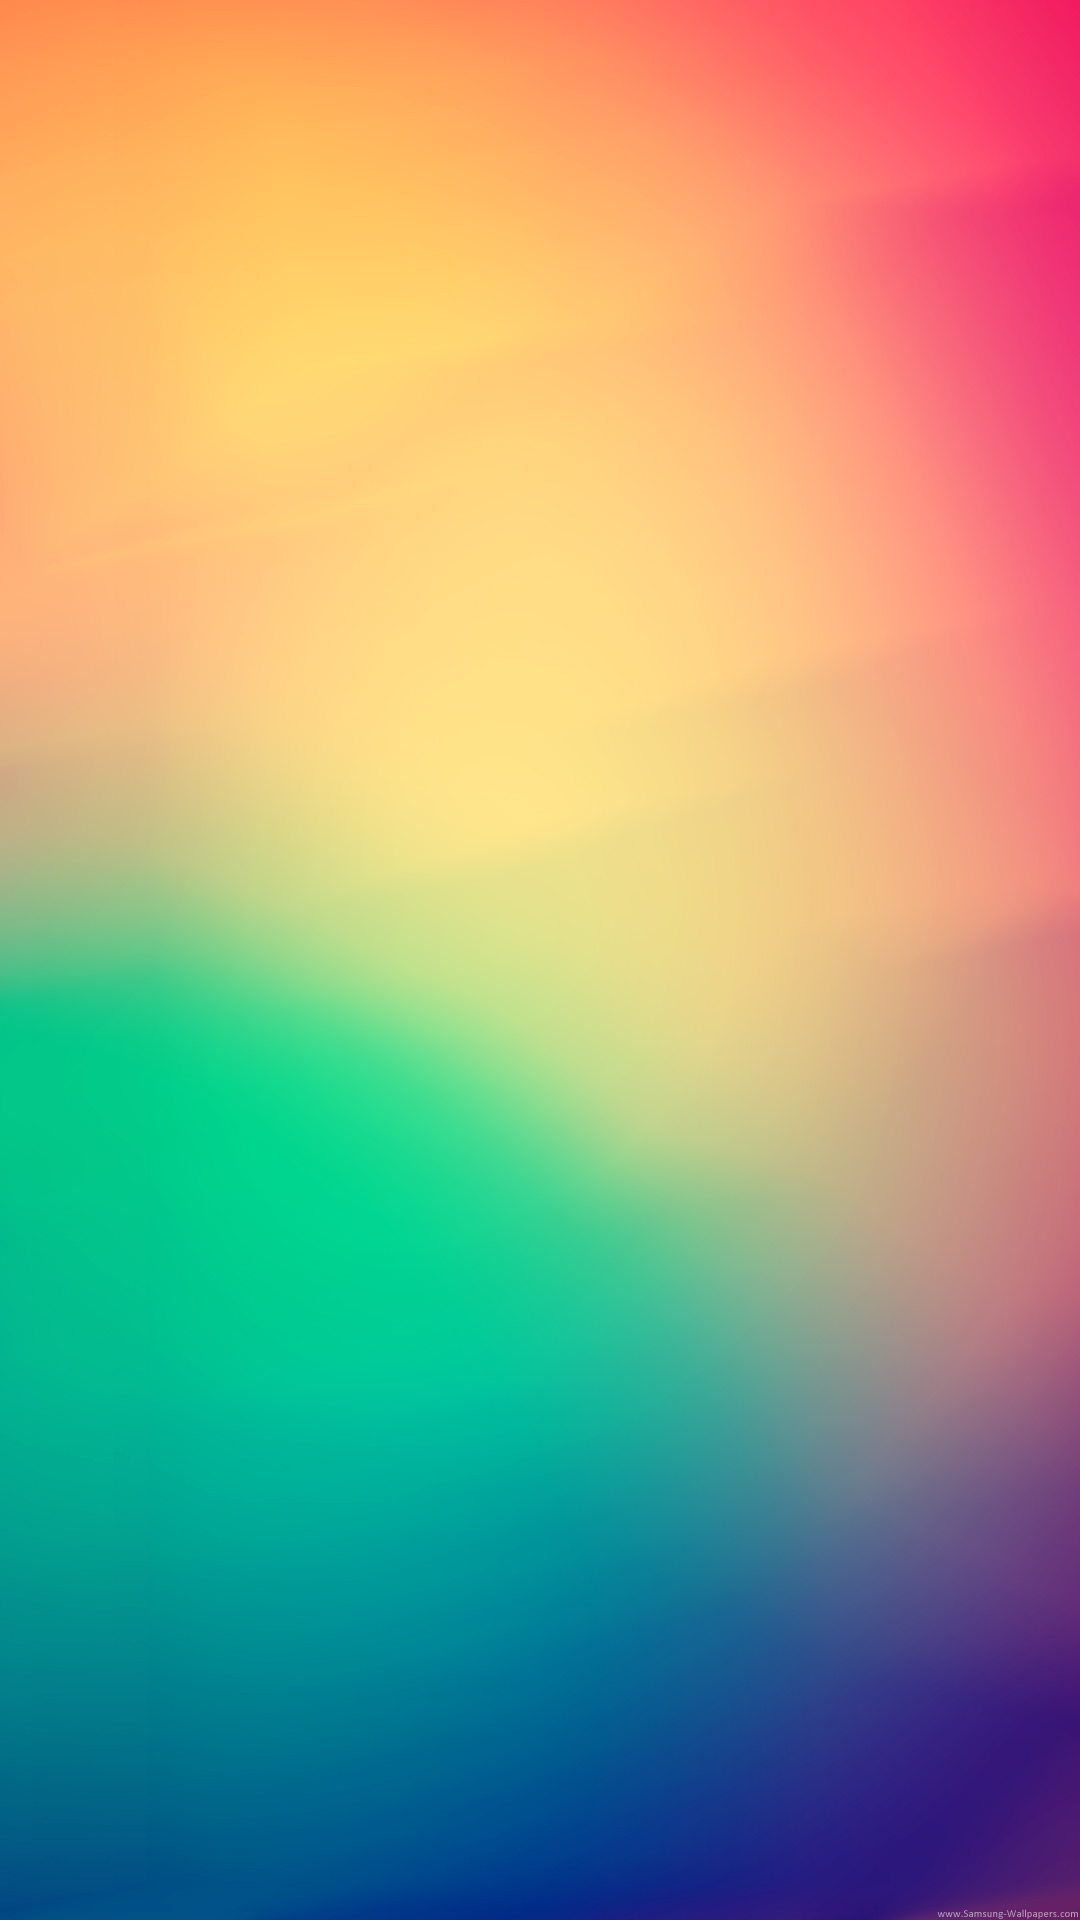 Best Ios 8 Iphone 6 And Iphone 6 Plus Wallpapers Hd - Background Color Full Screen - HD Wallpaper